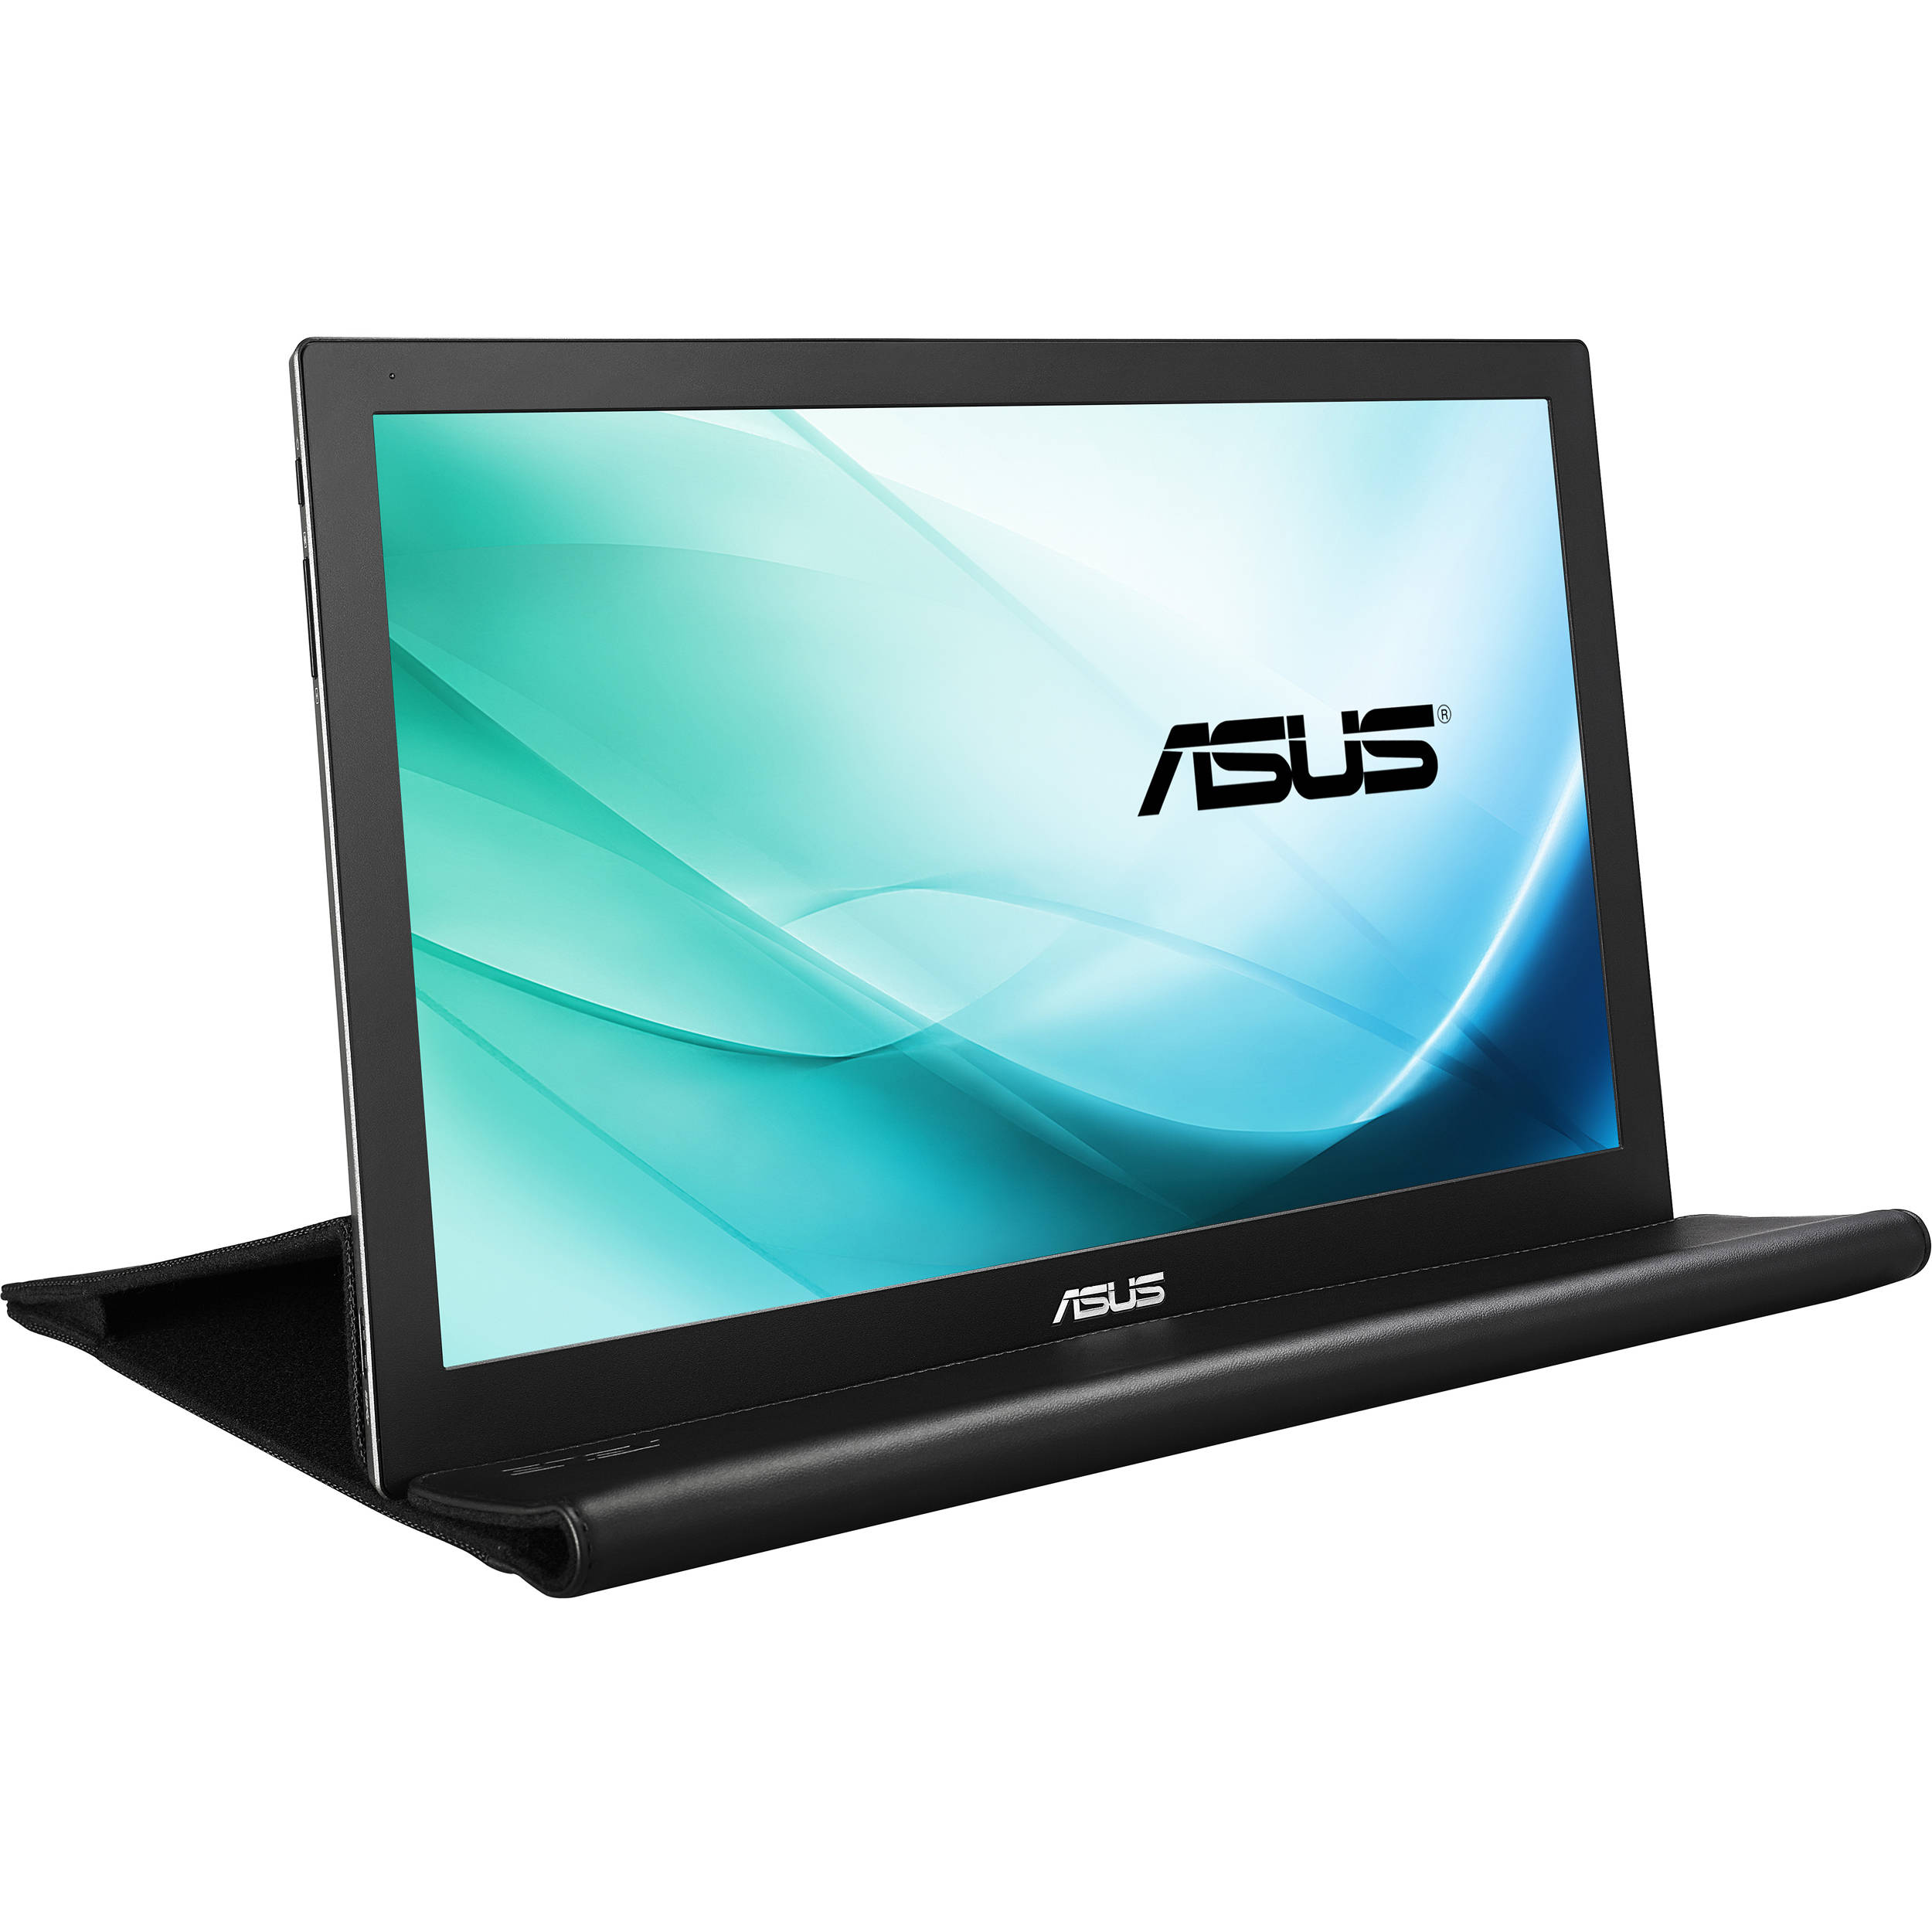 asus portable